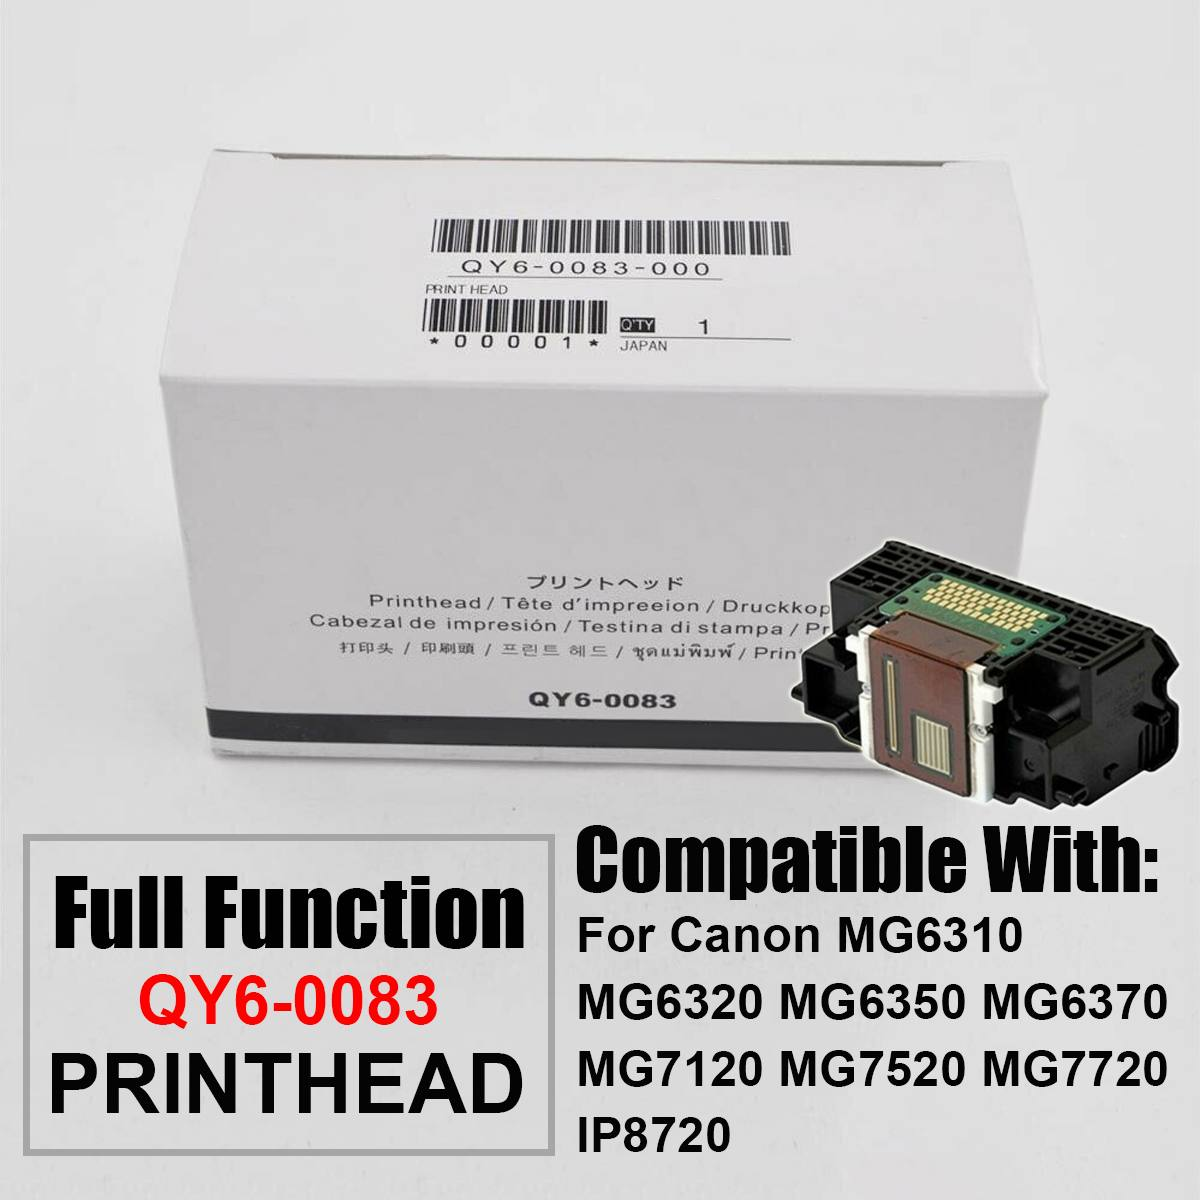 NEW 1Pcs Printhead Print Head Printer Parts For Canon QY6-0083-000 MG6320 MG7120 MG7520 MG7720 IP8720